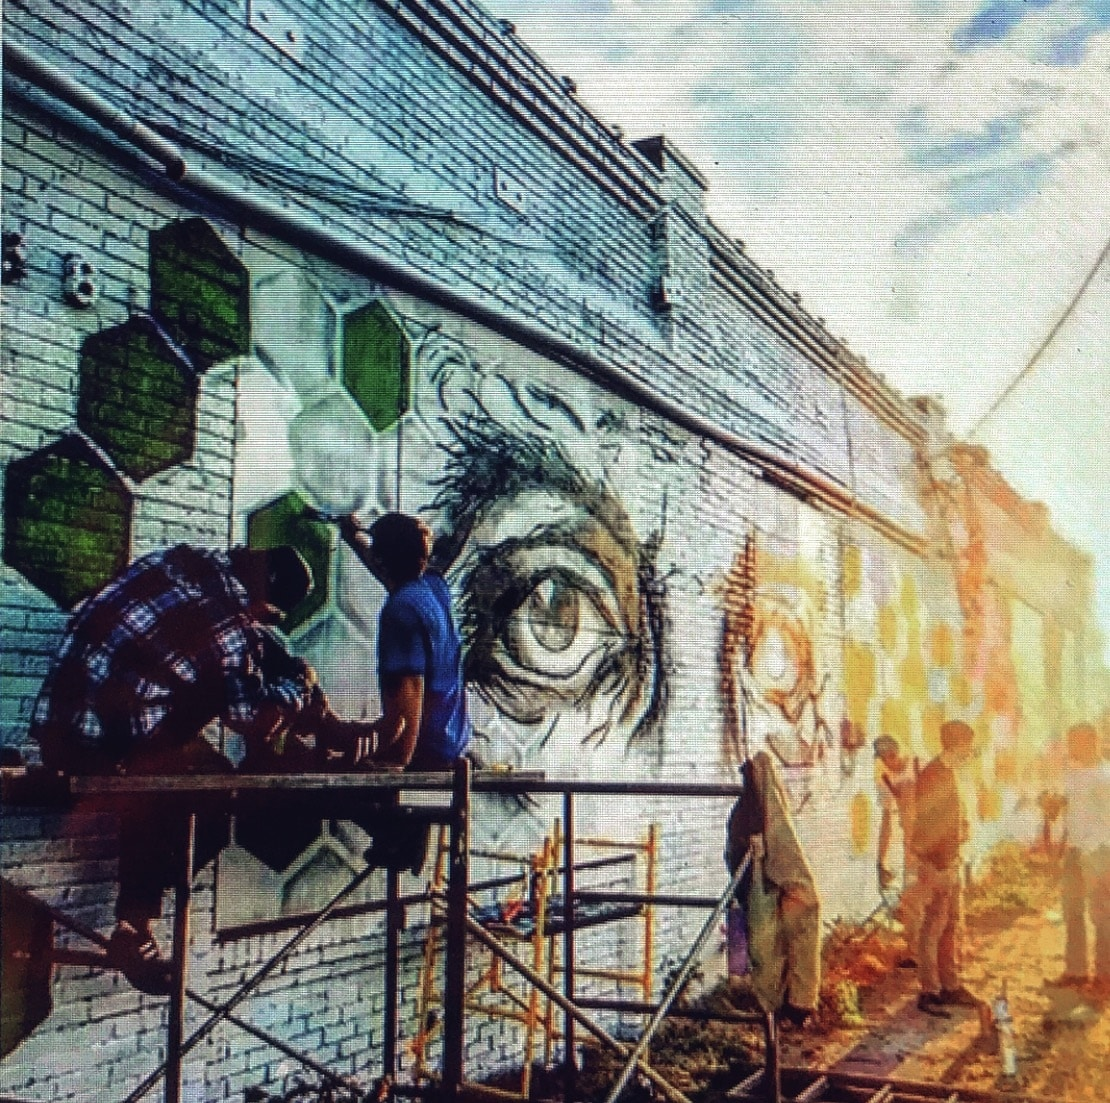 Bham Now's Instagram spotlight on Birmingham murals